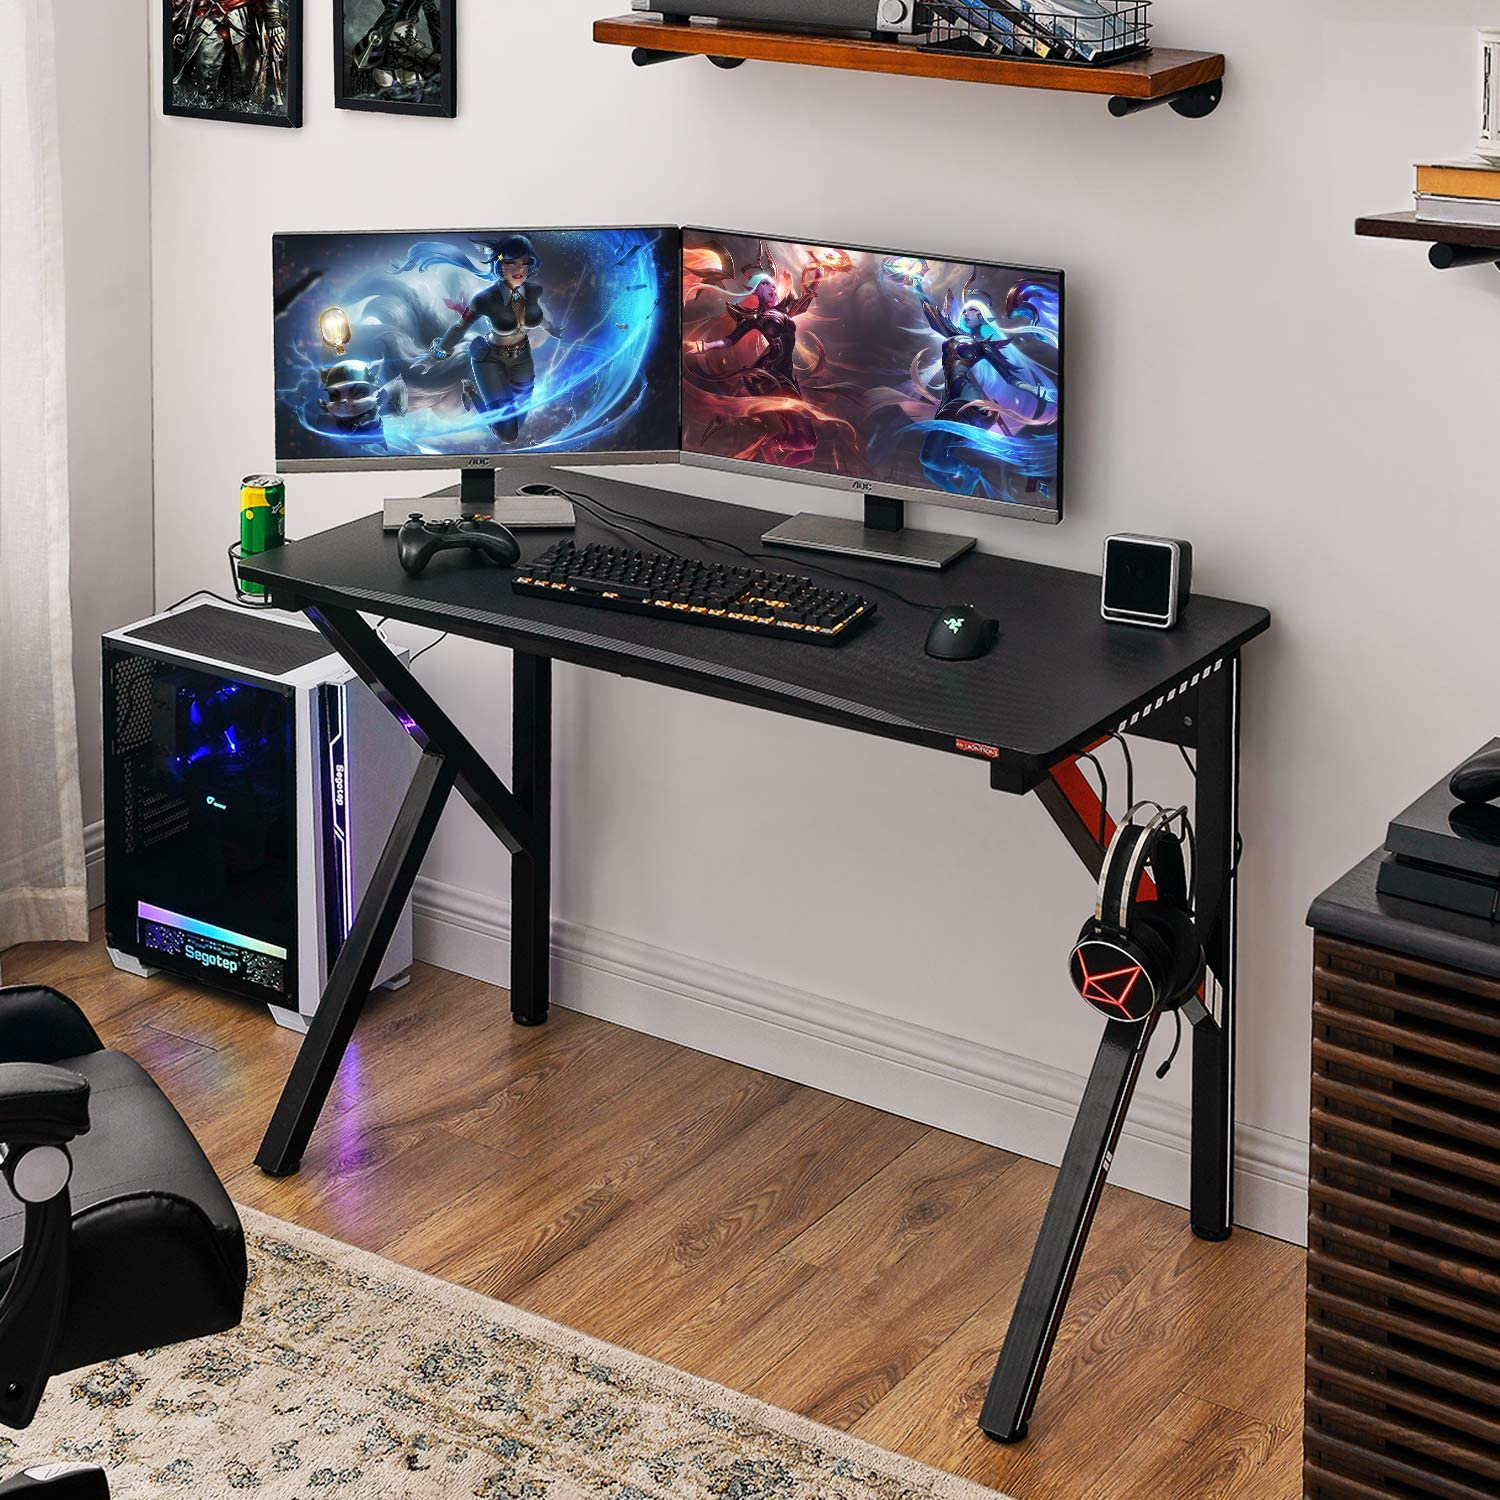 Gamer Workstation with Socket of 3-Outlet /& 2 USB Ports Red Mr IRONSTONE Gaming Desk 45.2 W x 23.6 D Home Office Computer Desk Cup Holder Headphone Hook and Cable Management